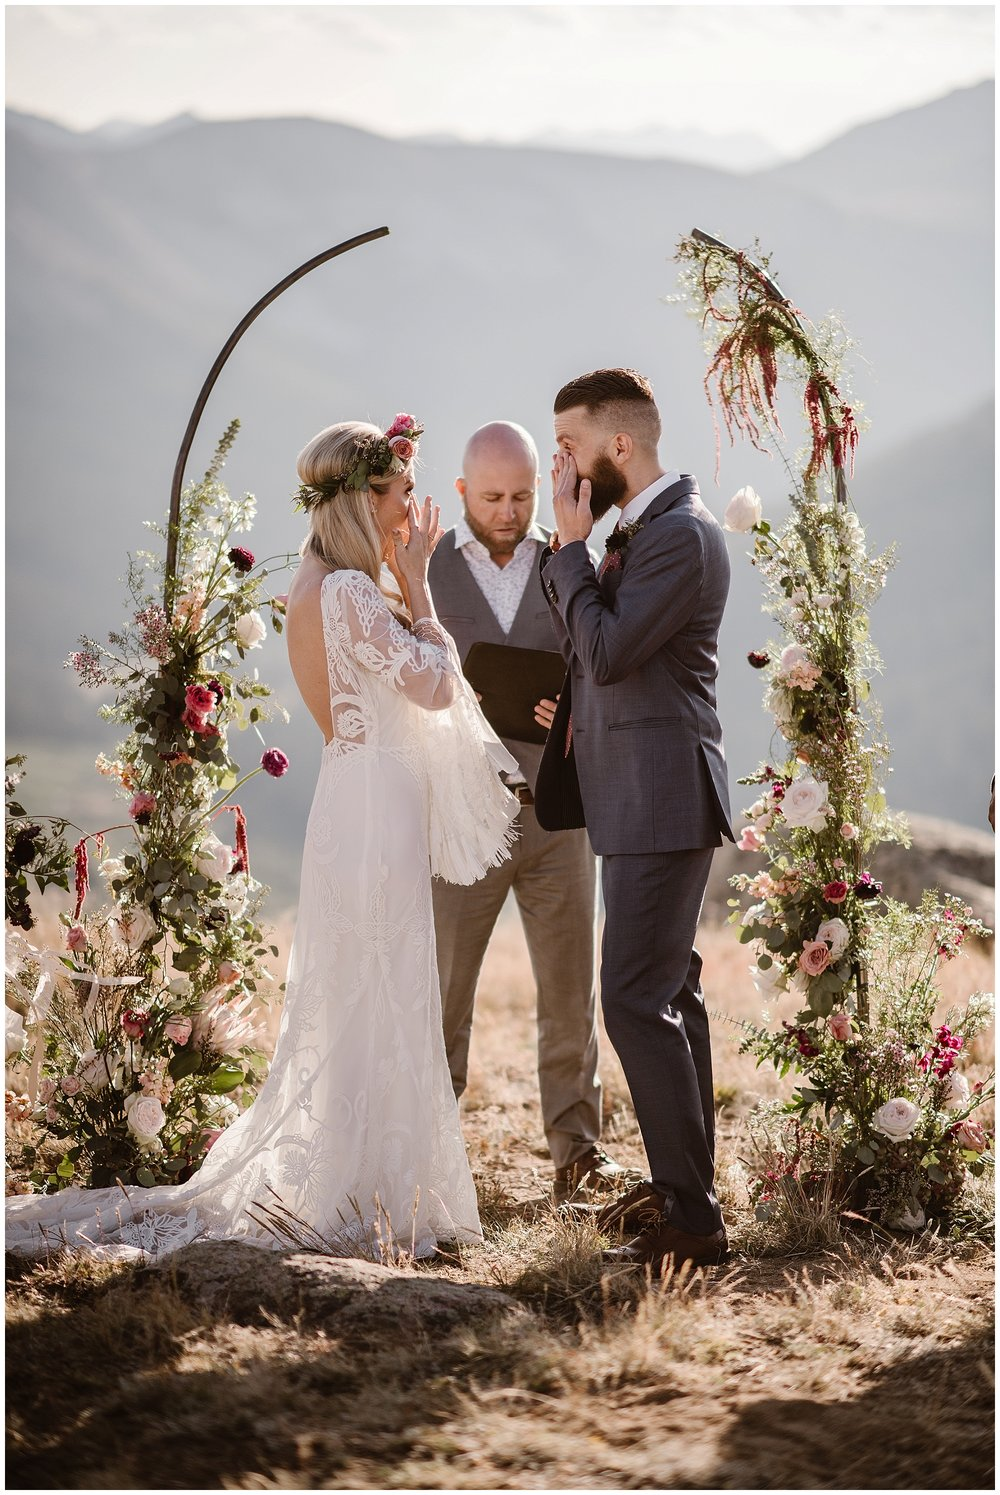 This couple chose to elope with an officiant and a backdrop of a stunning arch with flowers. Where you elope and how you say your vows matters! Photo by Maddie Mae, Adventure Instead Elopement Photographers.